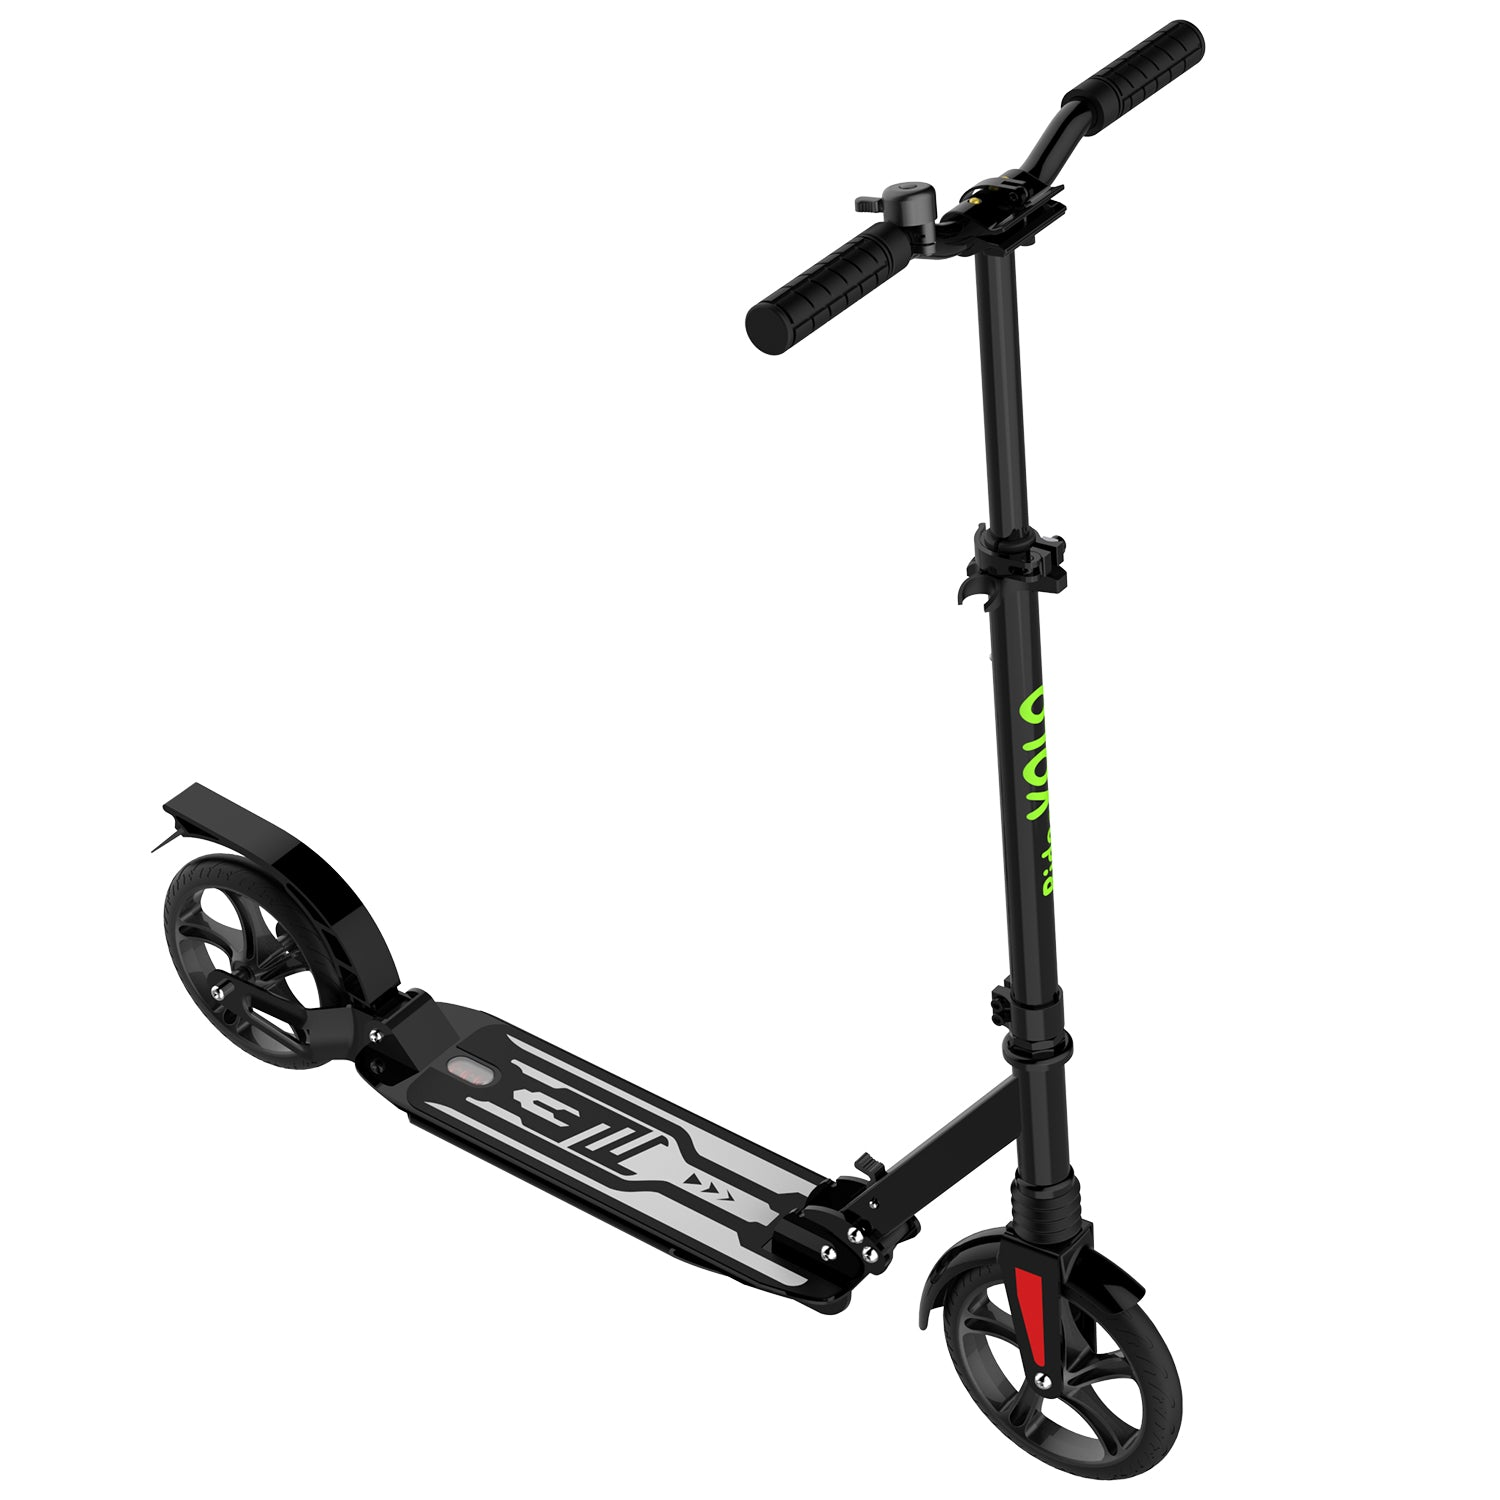 Black K08-1 Kick Scooter angle 2